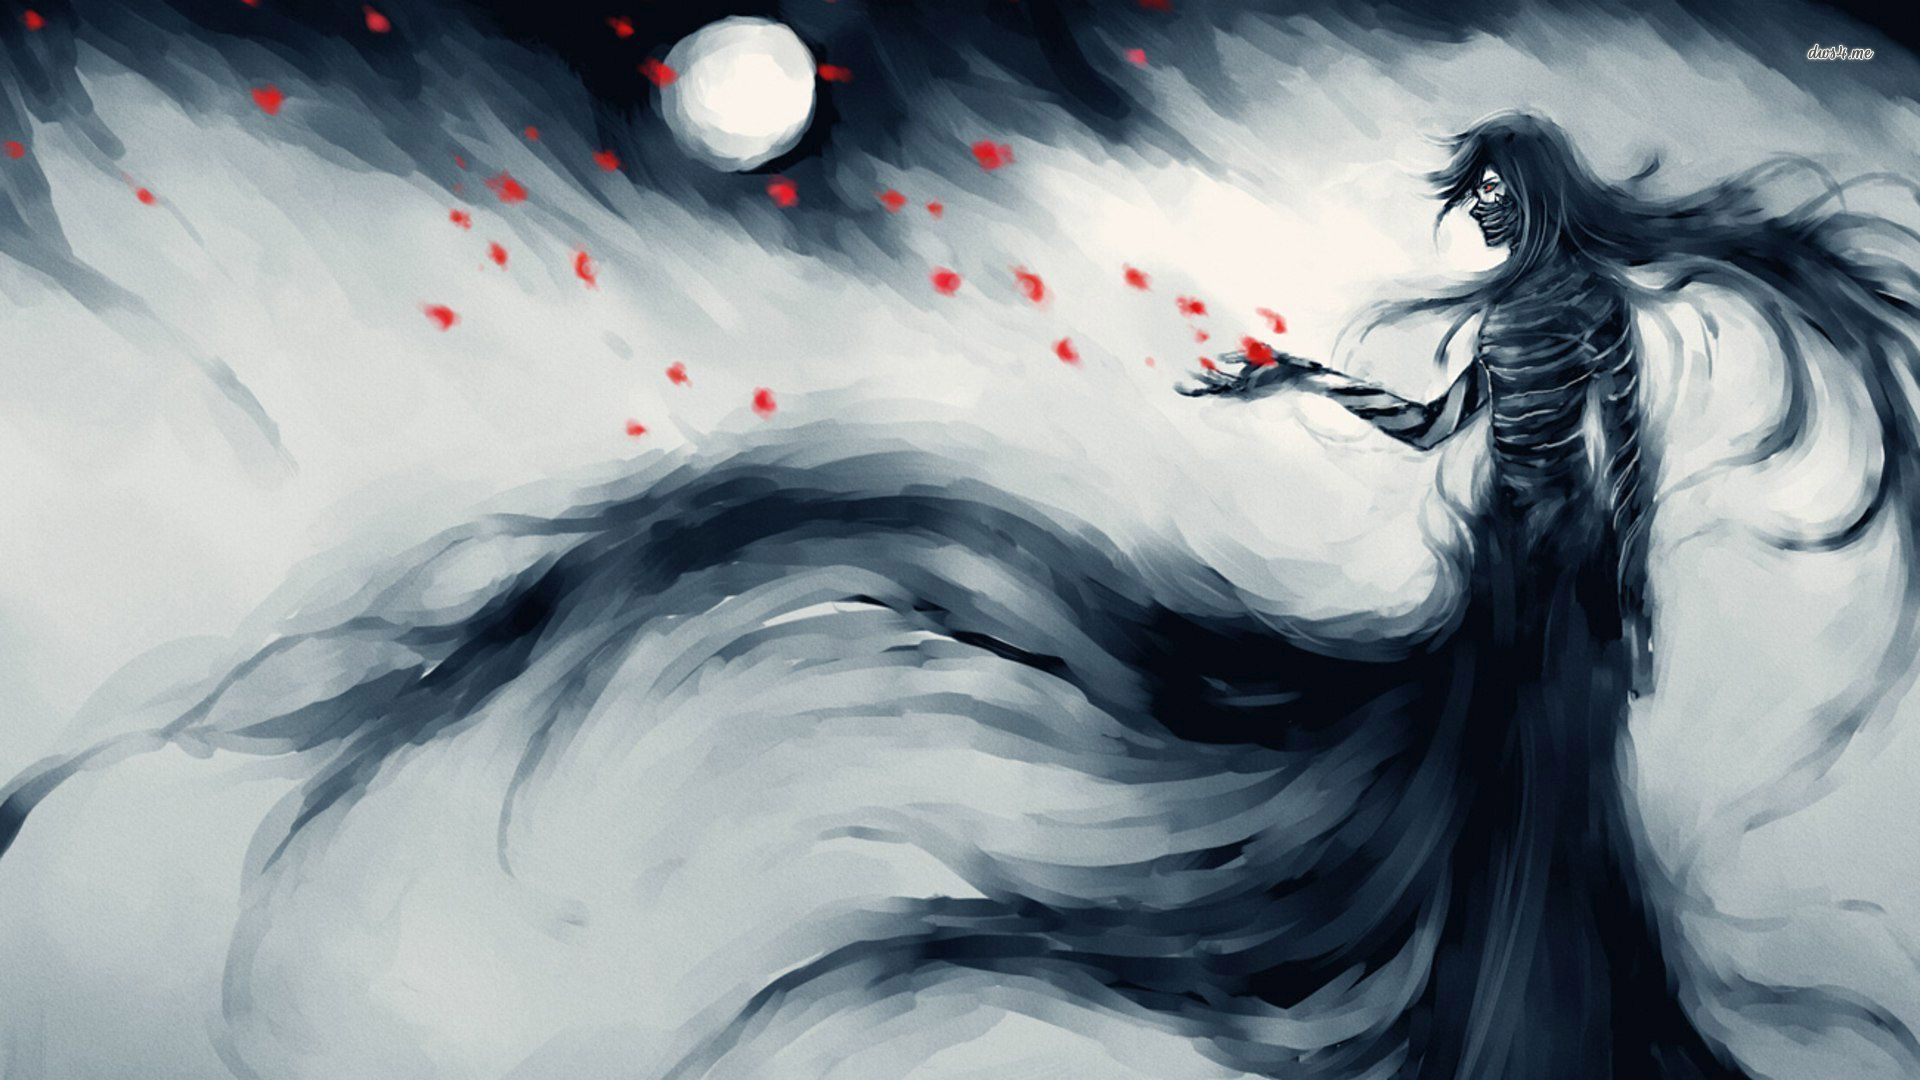 Bleach Anime Wallpaper 4k HD Art Wallpaper Kurosaki